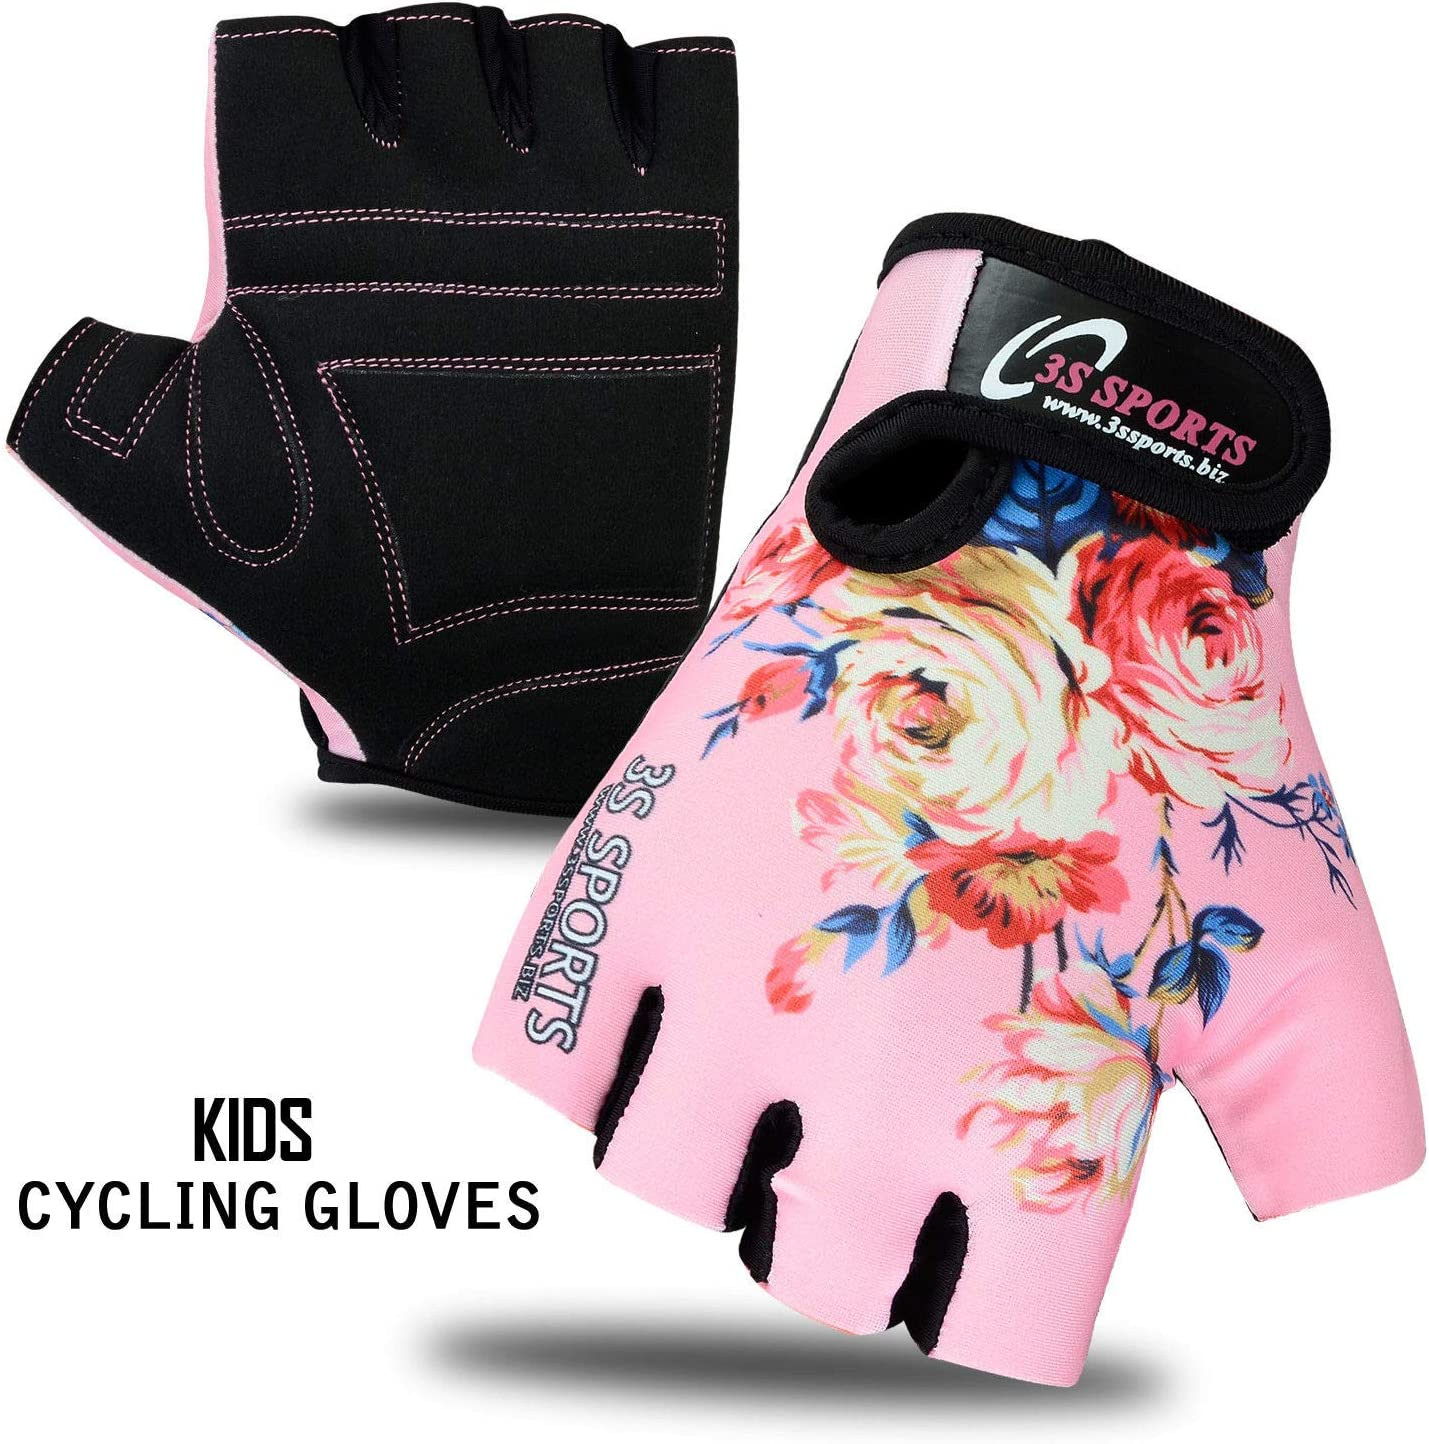 NEW CHILDREN KIDS BOYS GIRLS PADDED CYCLING GLOVES CYCLE BICYCLE BMX BIKE GLOVES